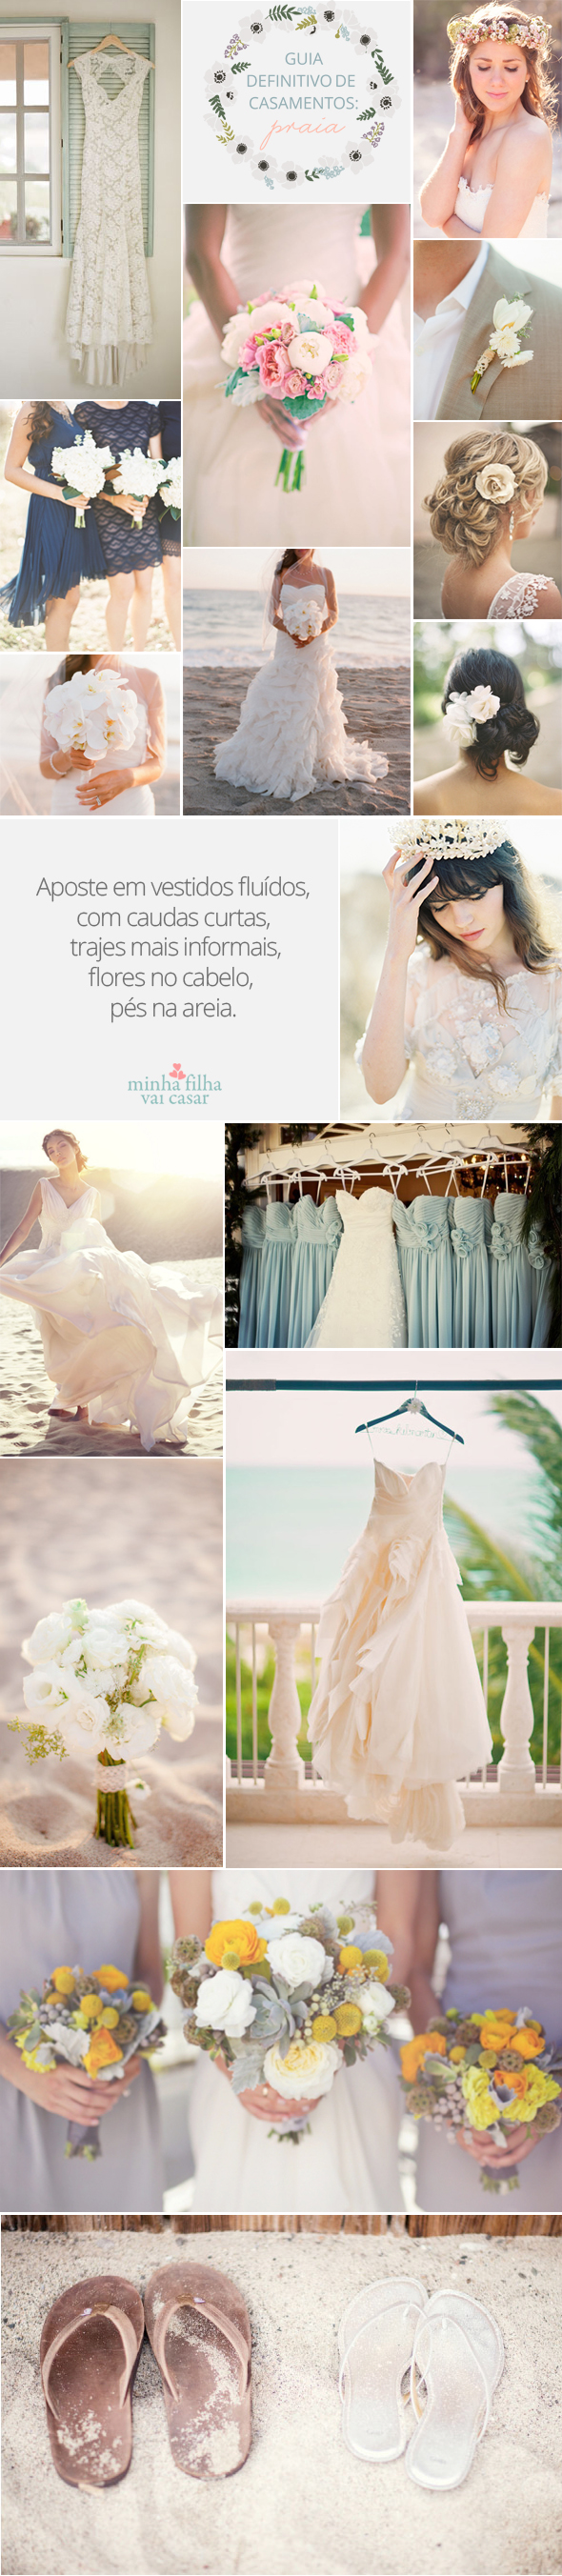 Beach wedding looks for bride  There is a dress down towards the bottom that is about perfect